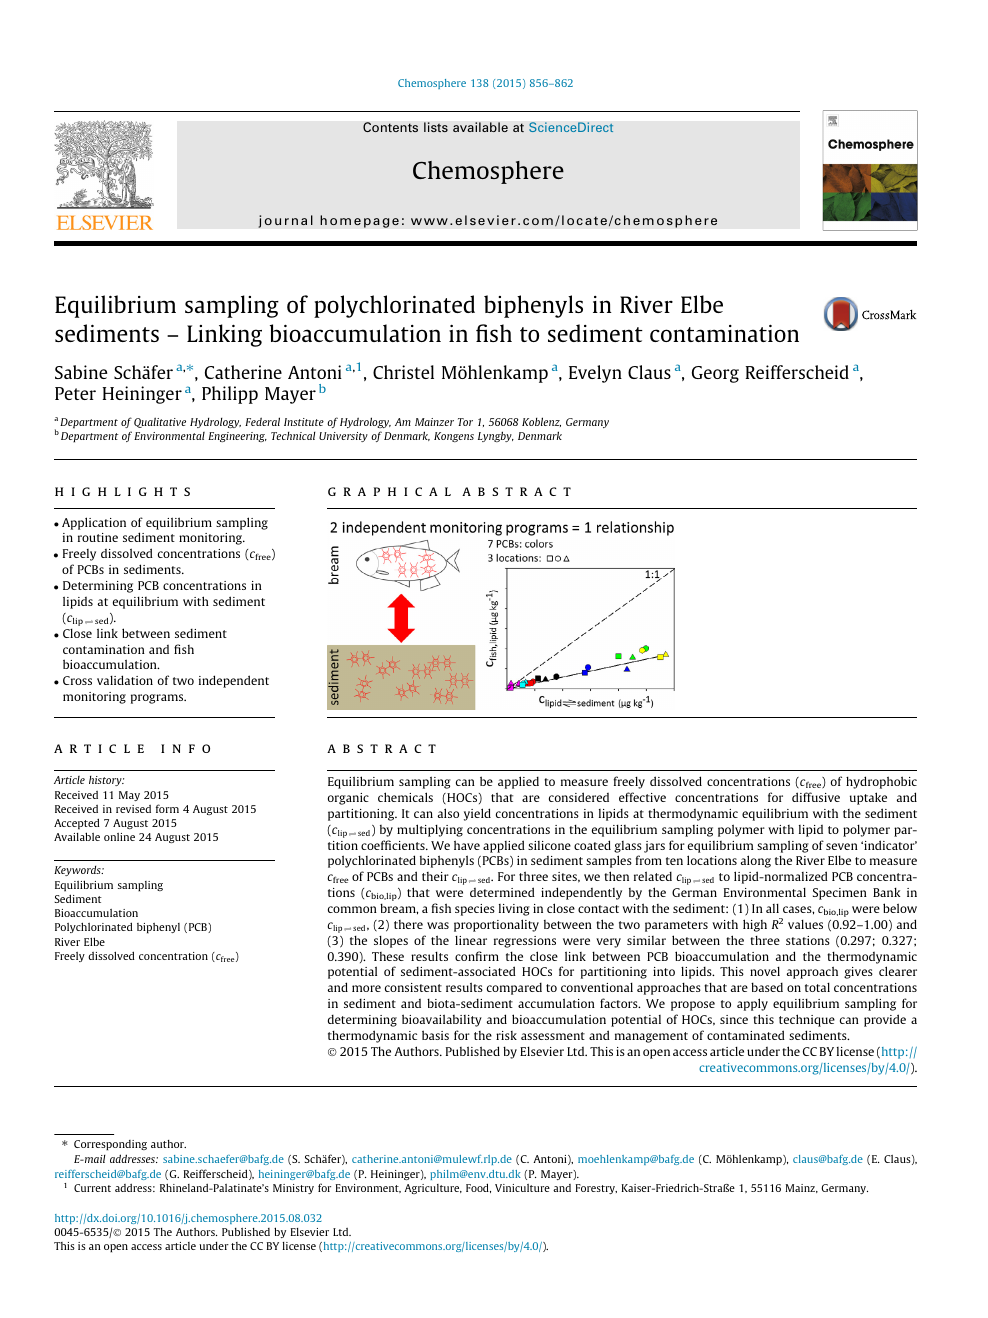 Equilibrium sampling of polychlorinated biphenyls in River Elbe